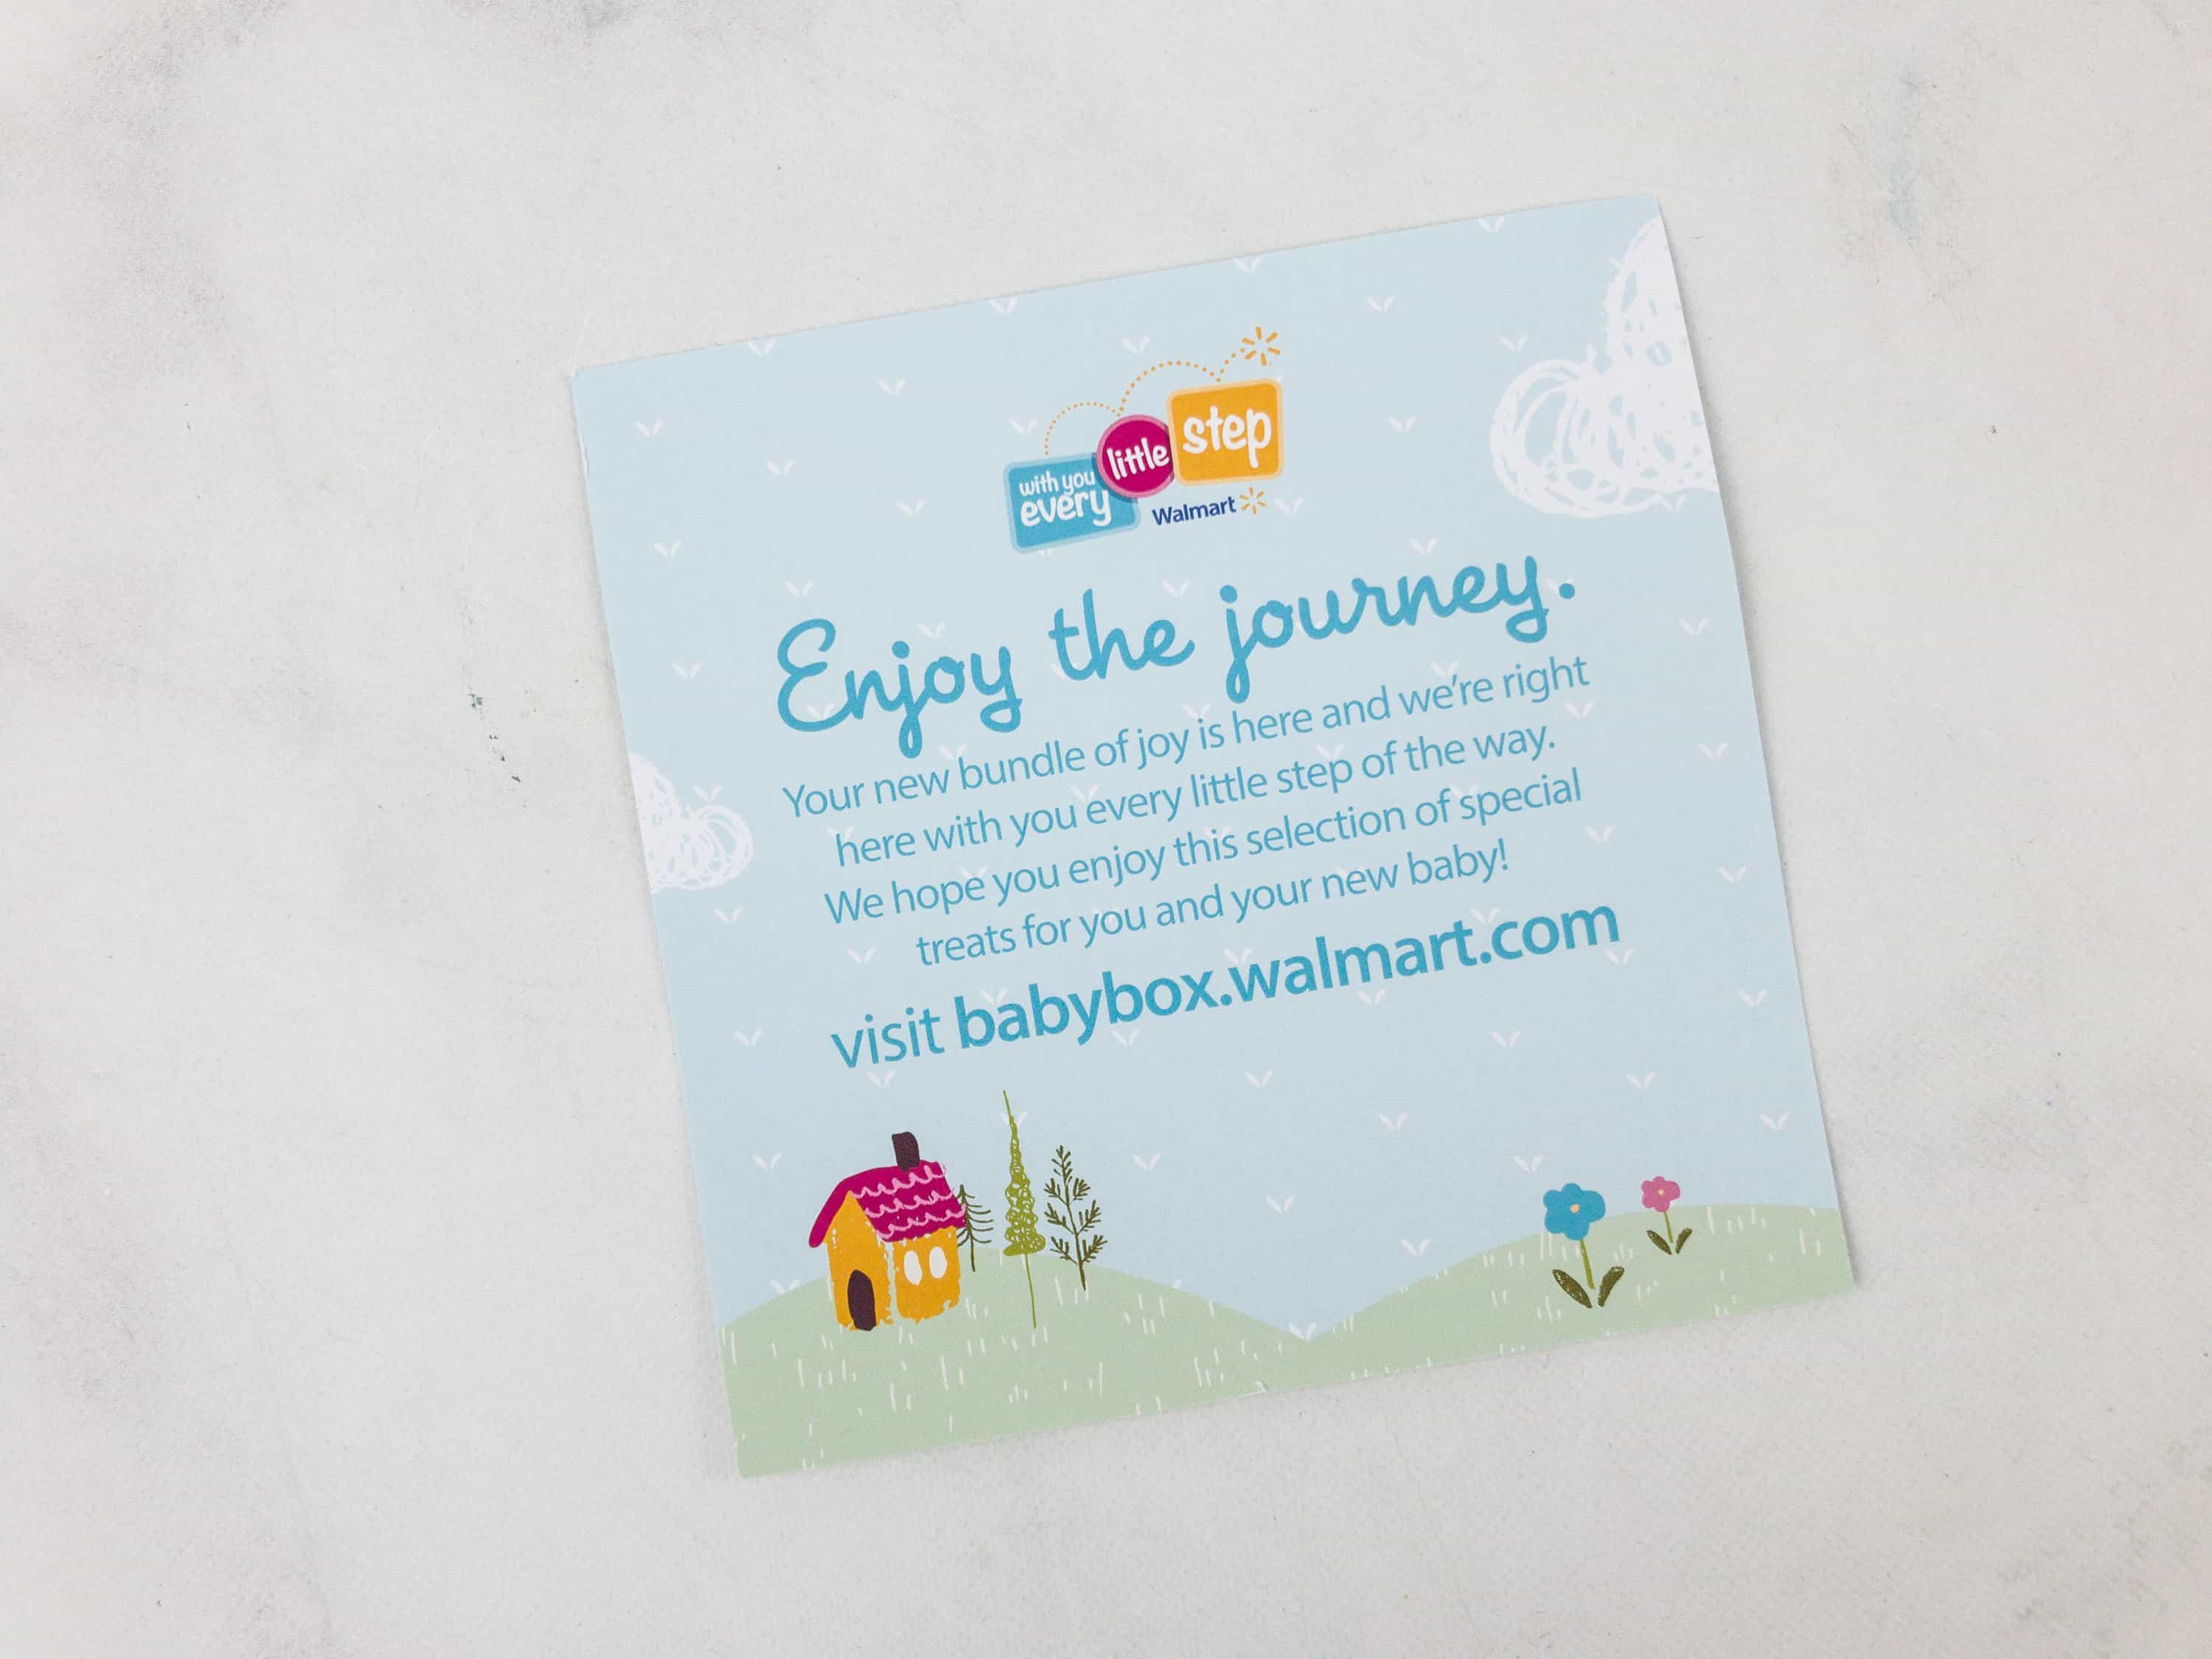 Verwonderend Walmart Baby Box Review: Prenatal Box - hello subscription VM-21